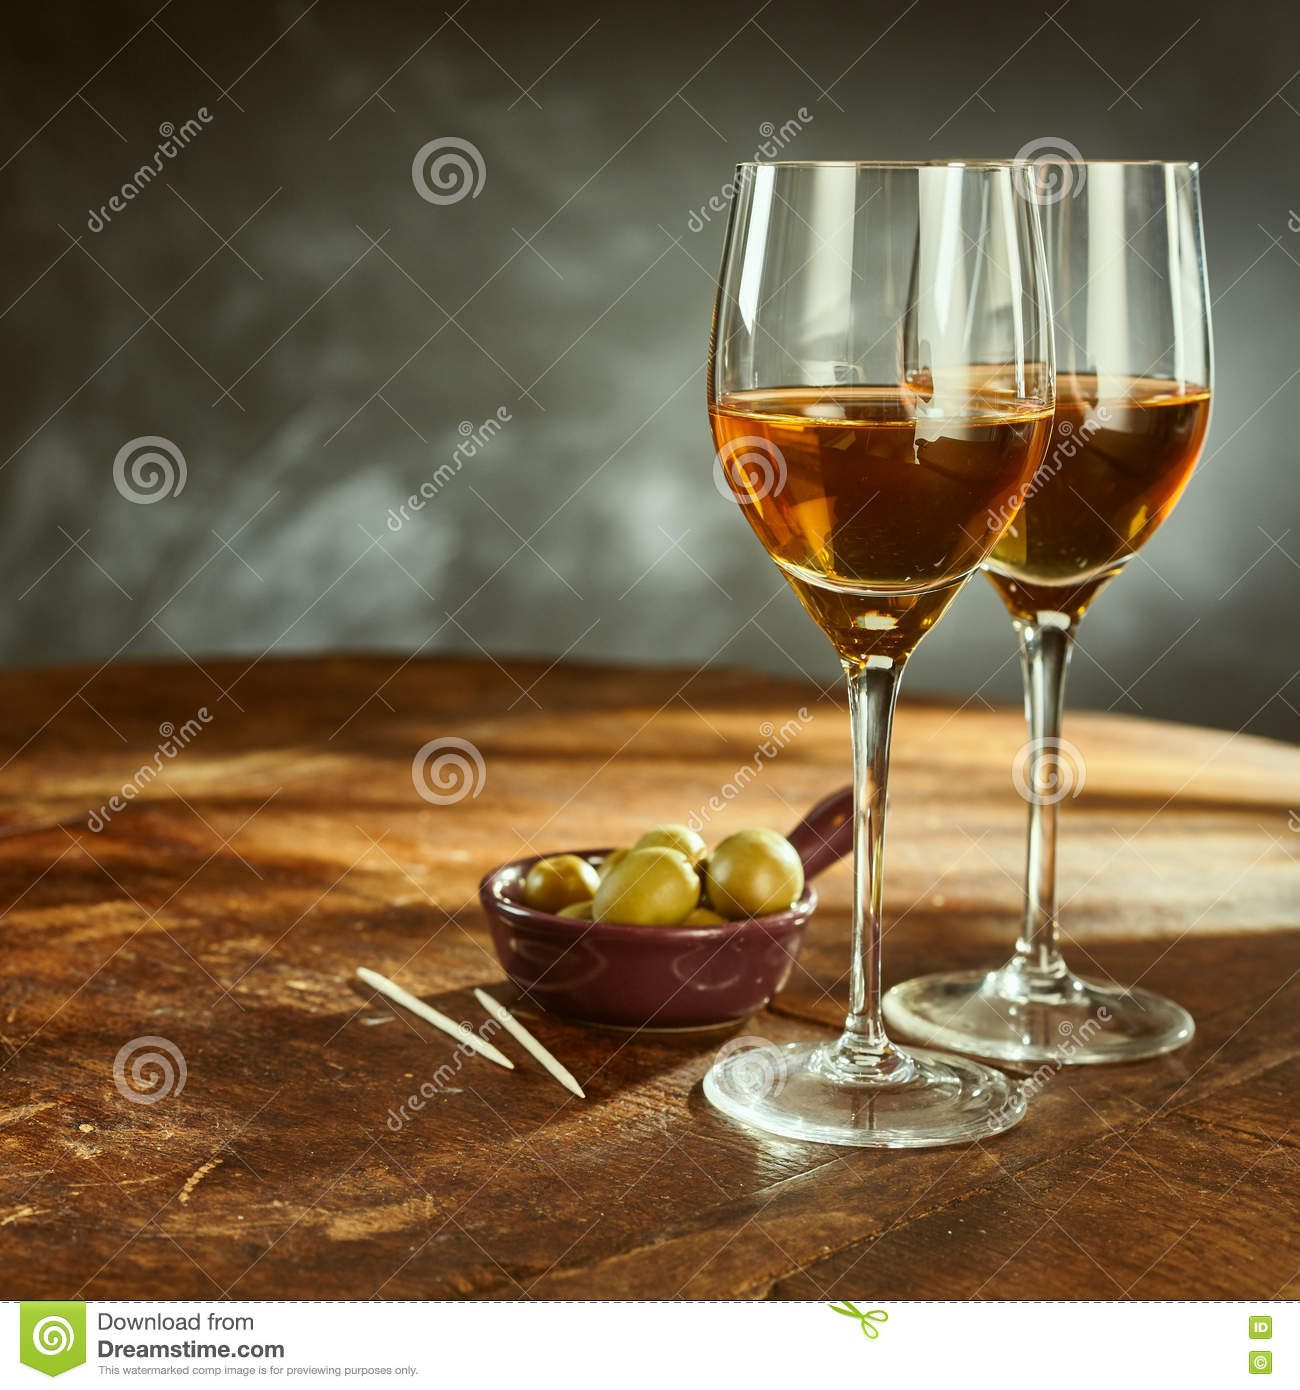 Glasses of Wine on Wooden Table with Green Olives